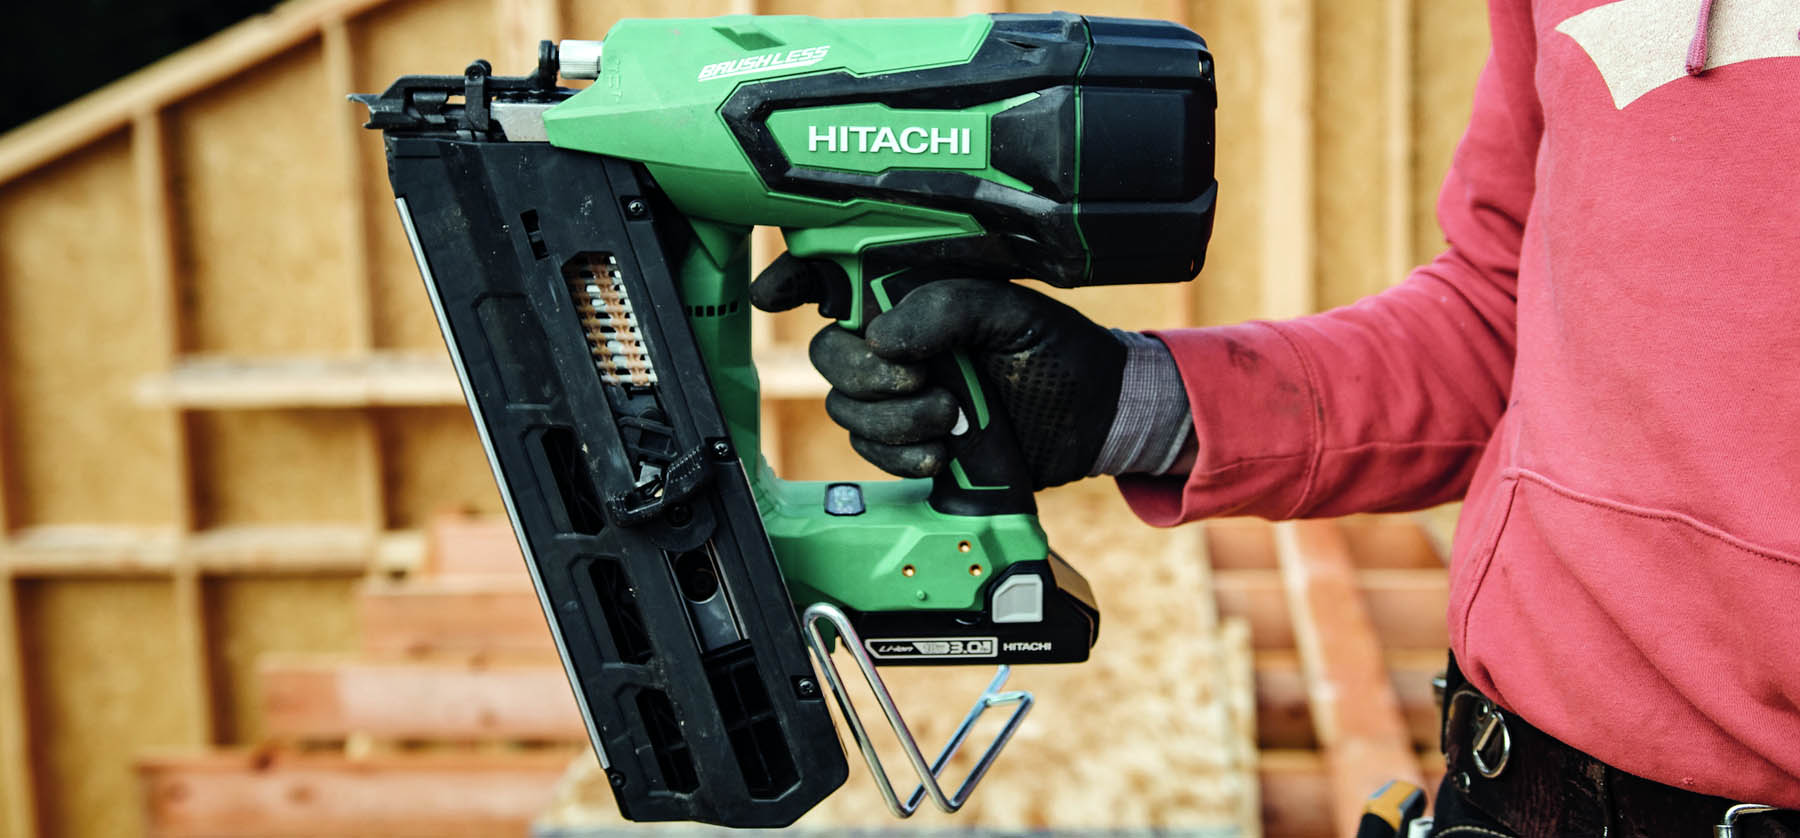 battery powered nail guns are among the best woodworking tools for beginners